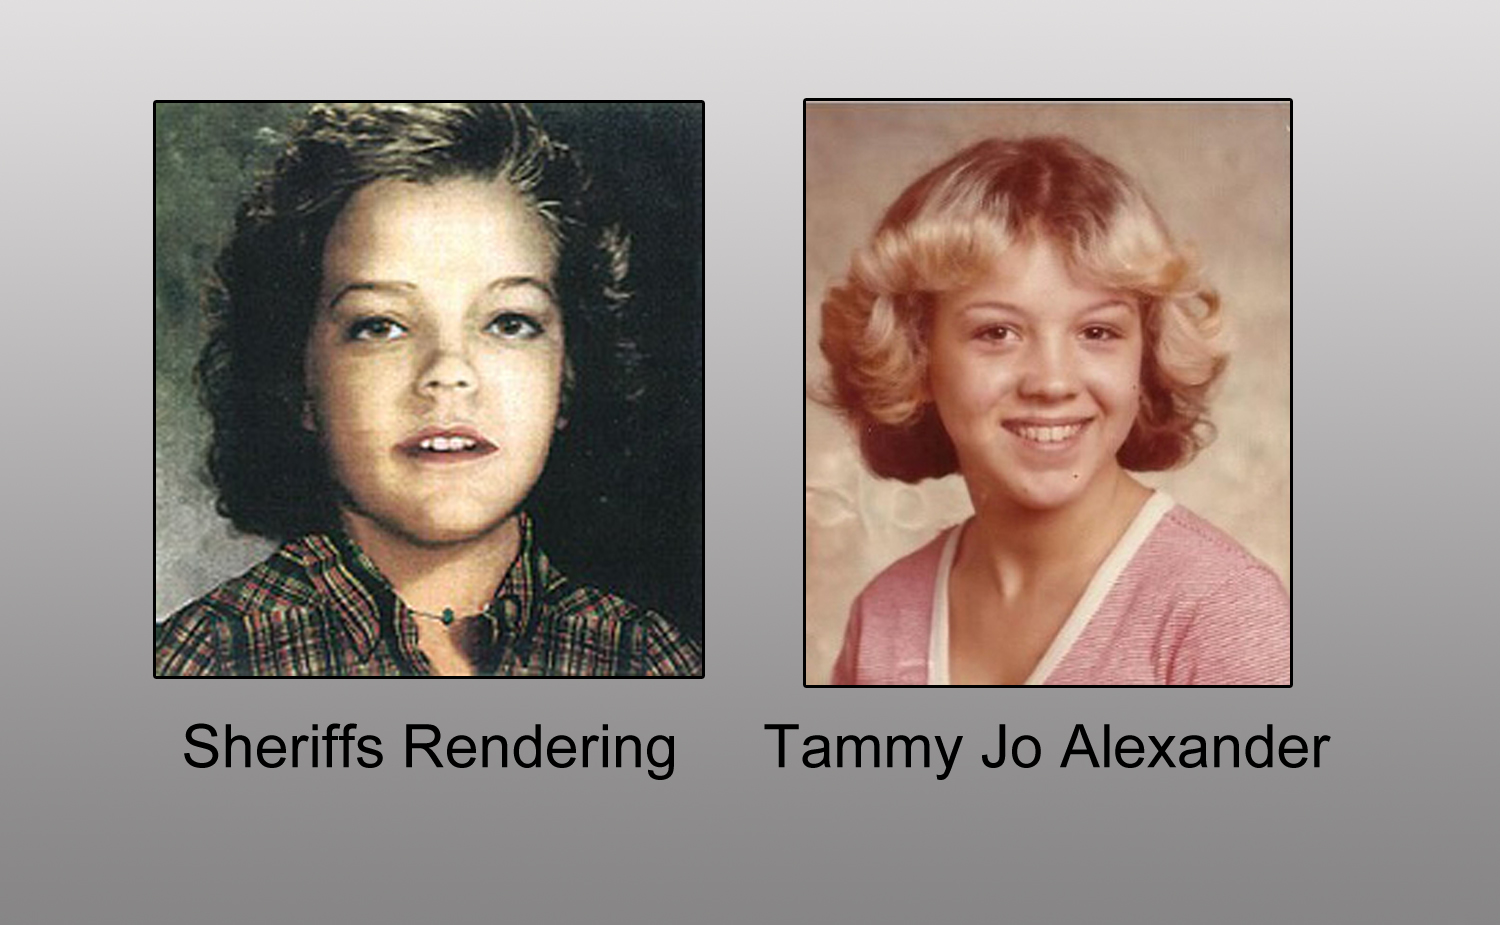 Digital Renderings of Jane Doe Eerily Accurate of Tammy Jo Alexander